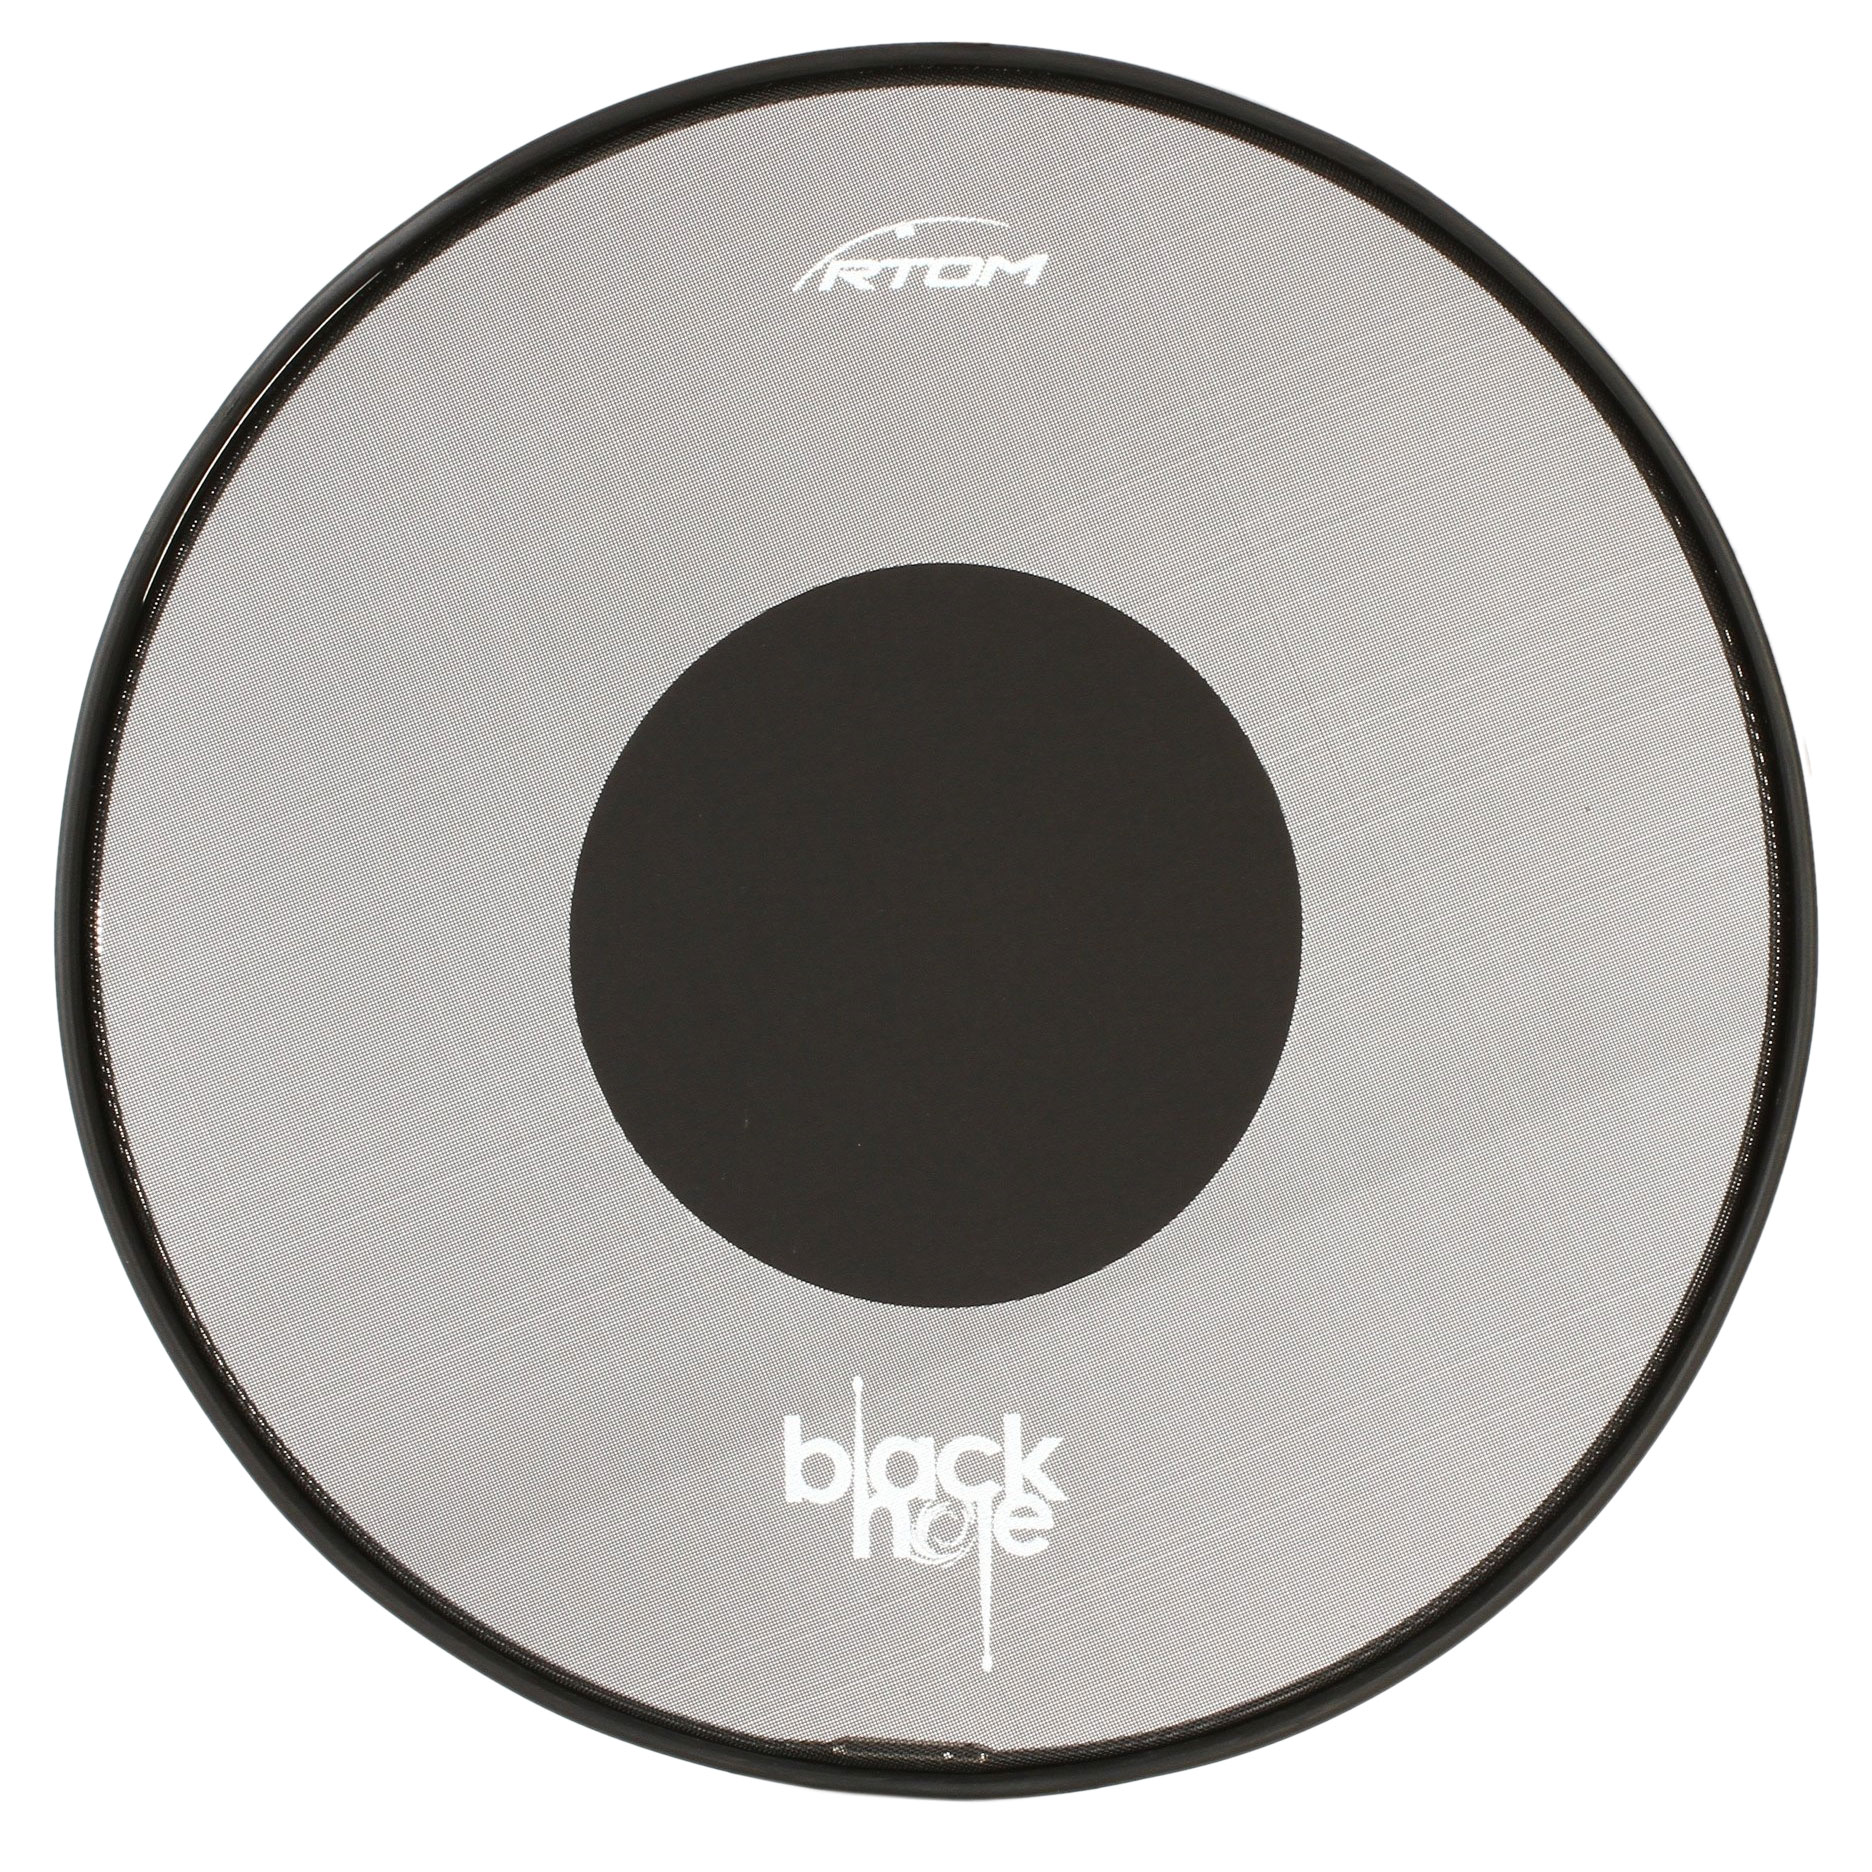 "RTOM 20"" Black Hole Snap-On Bass Drum Practice Pad with Tuneable Mesh Head"